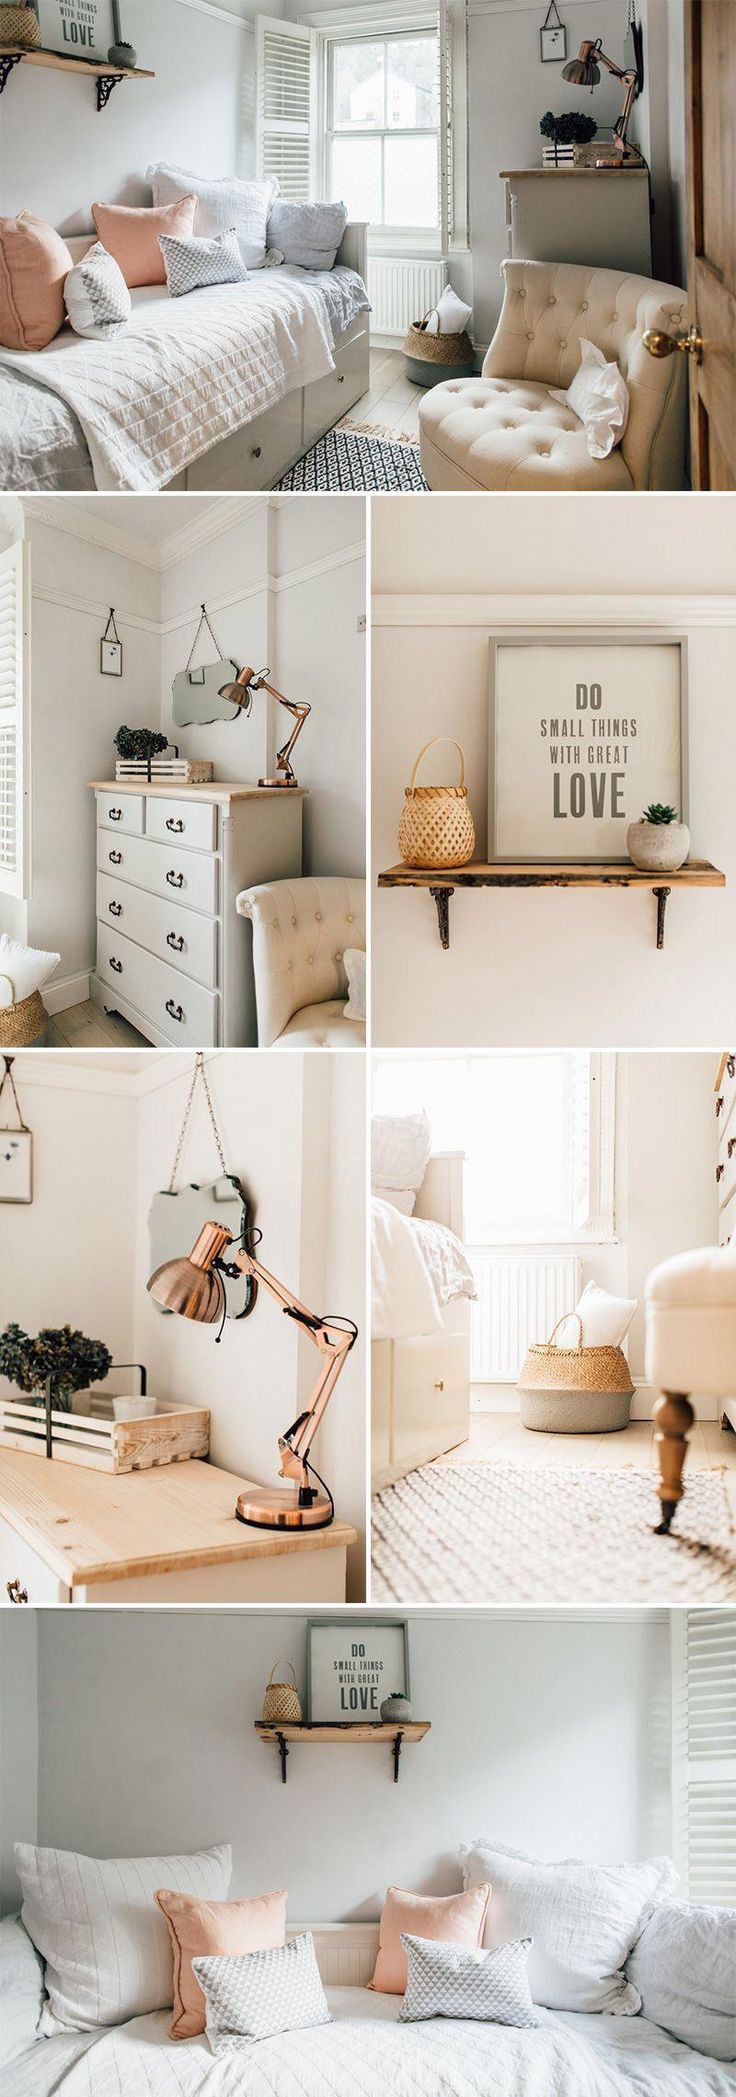 a light and airy guest bedroom Guest bedroom decor ideas